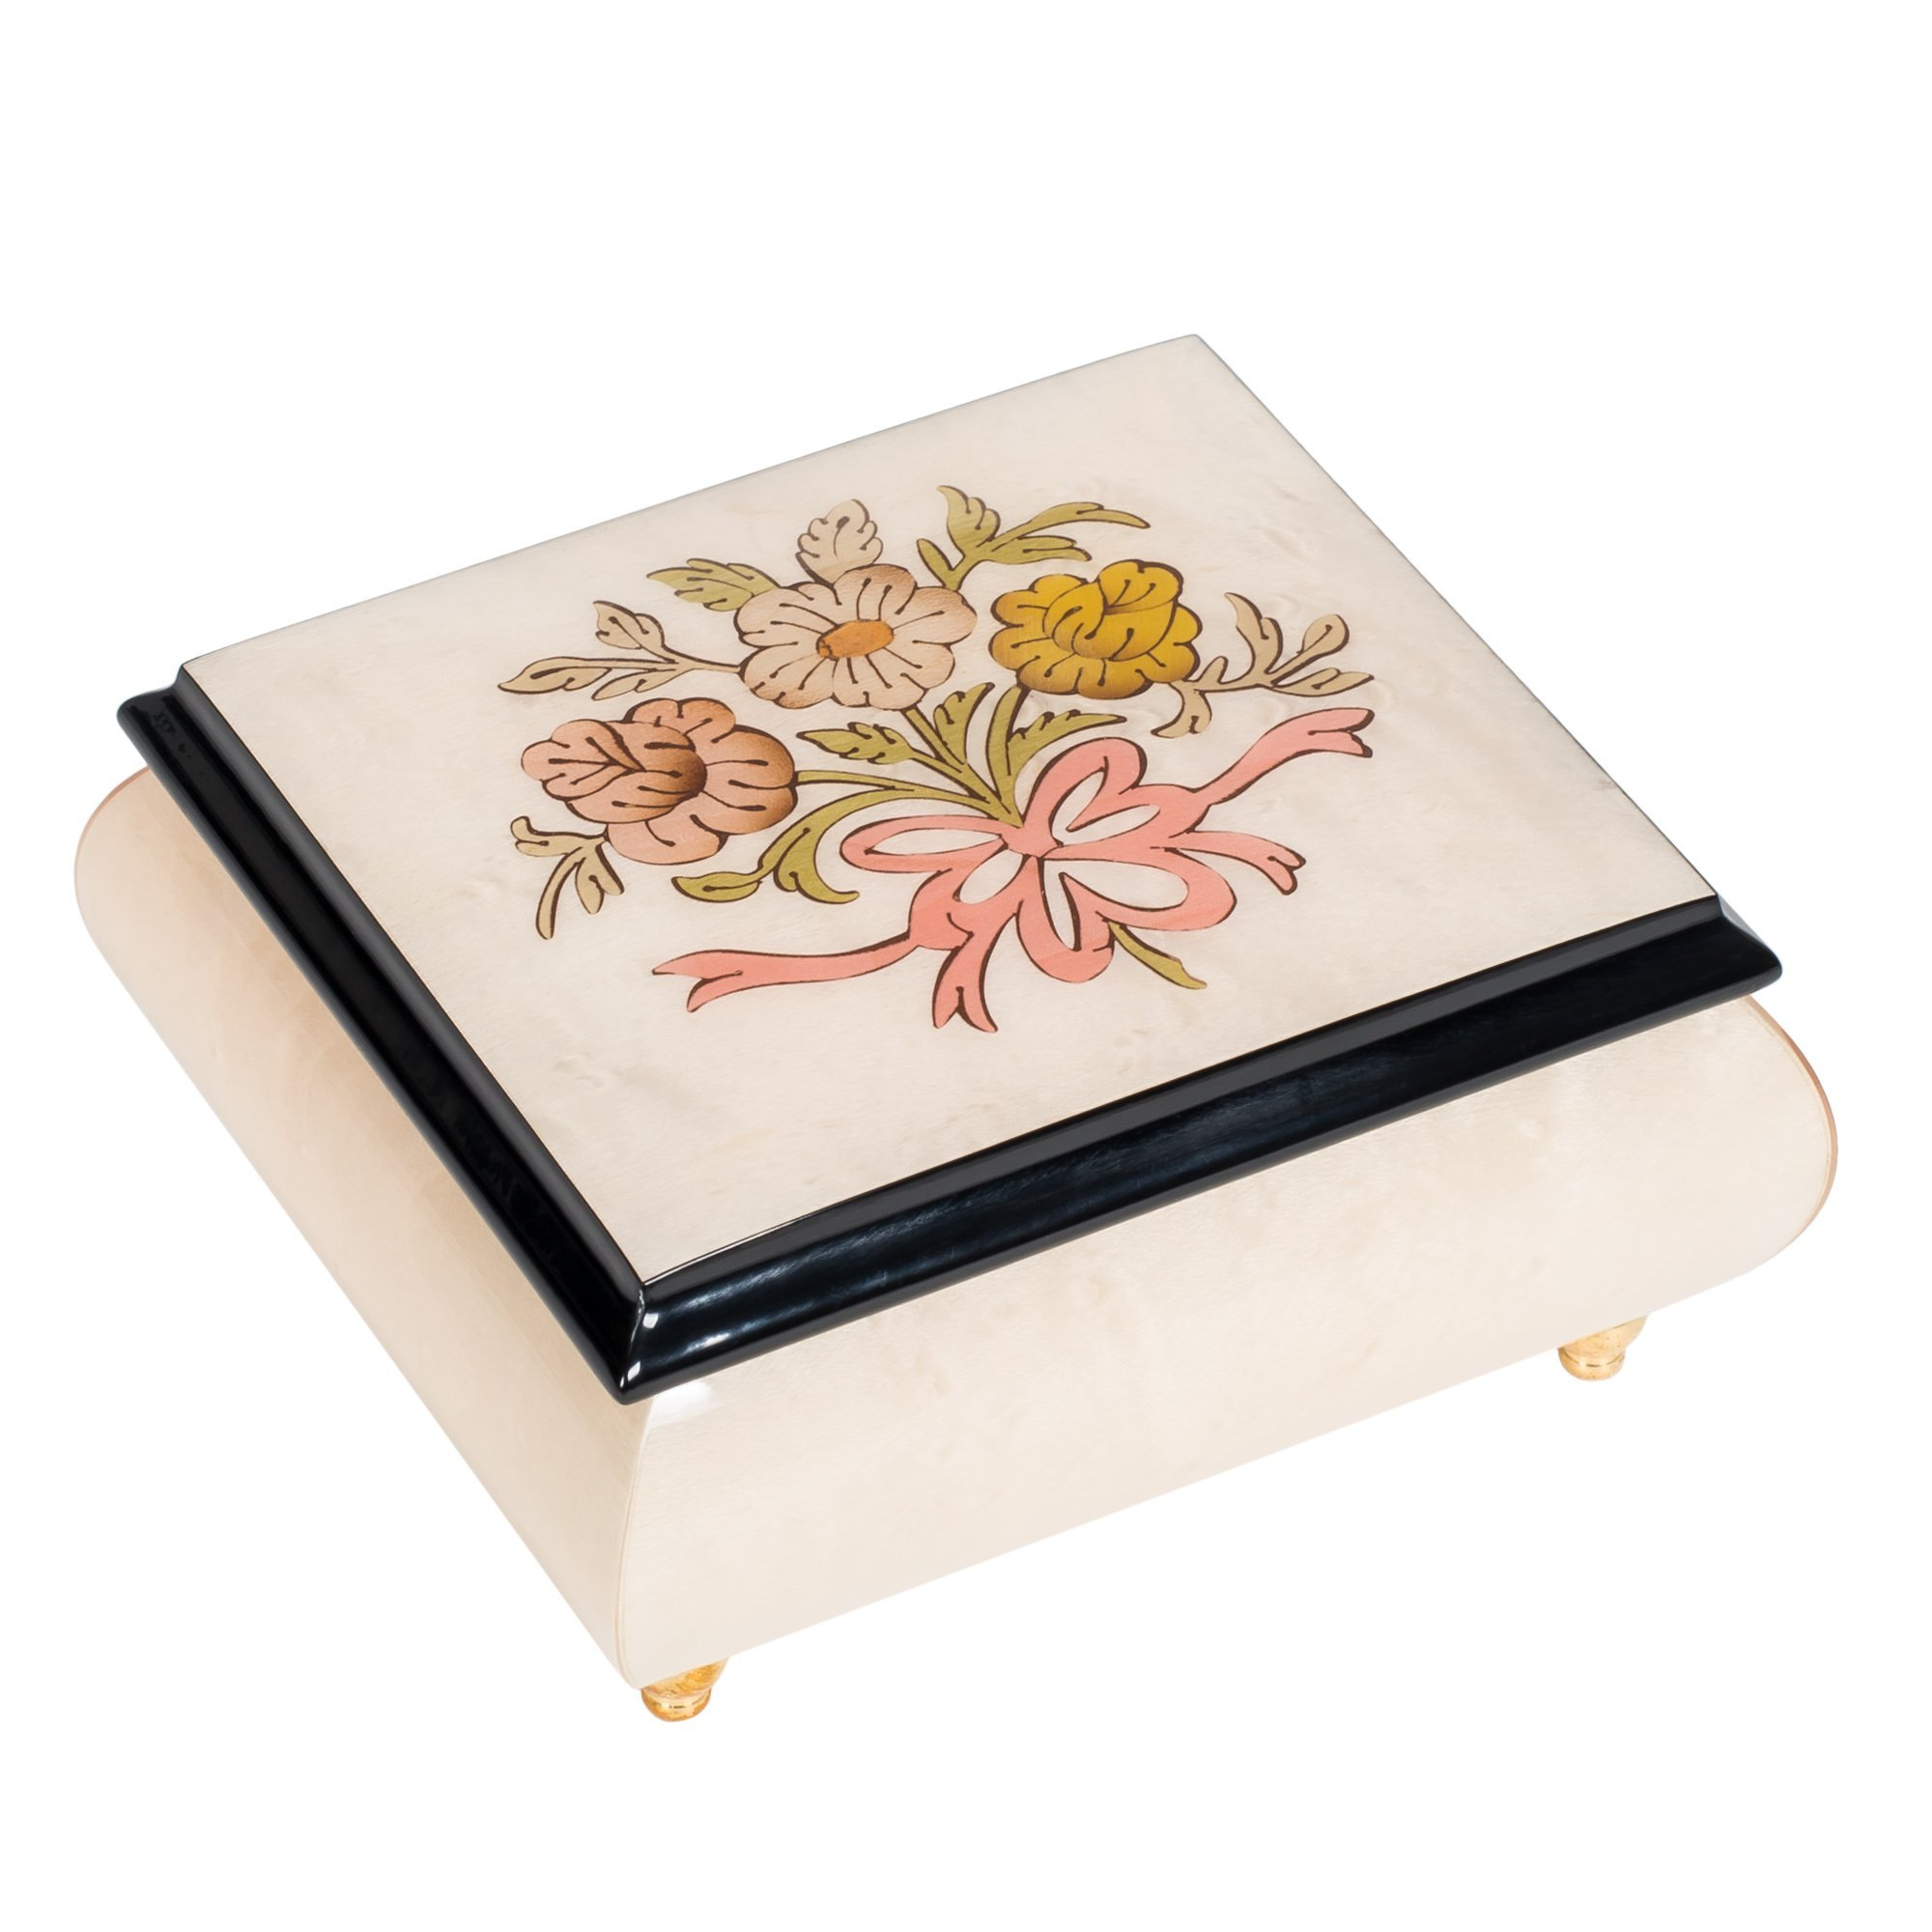 Floral White Italian Hand Crafted Inlaid Wood Jewelry Music Box Plays Canon in D